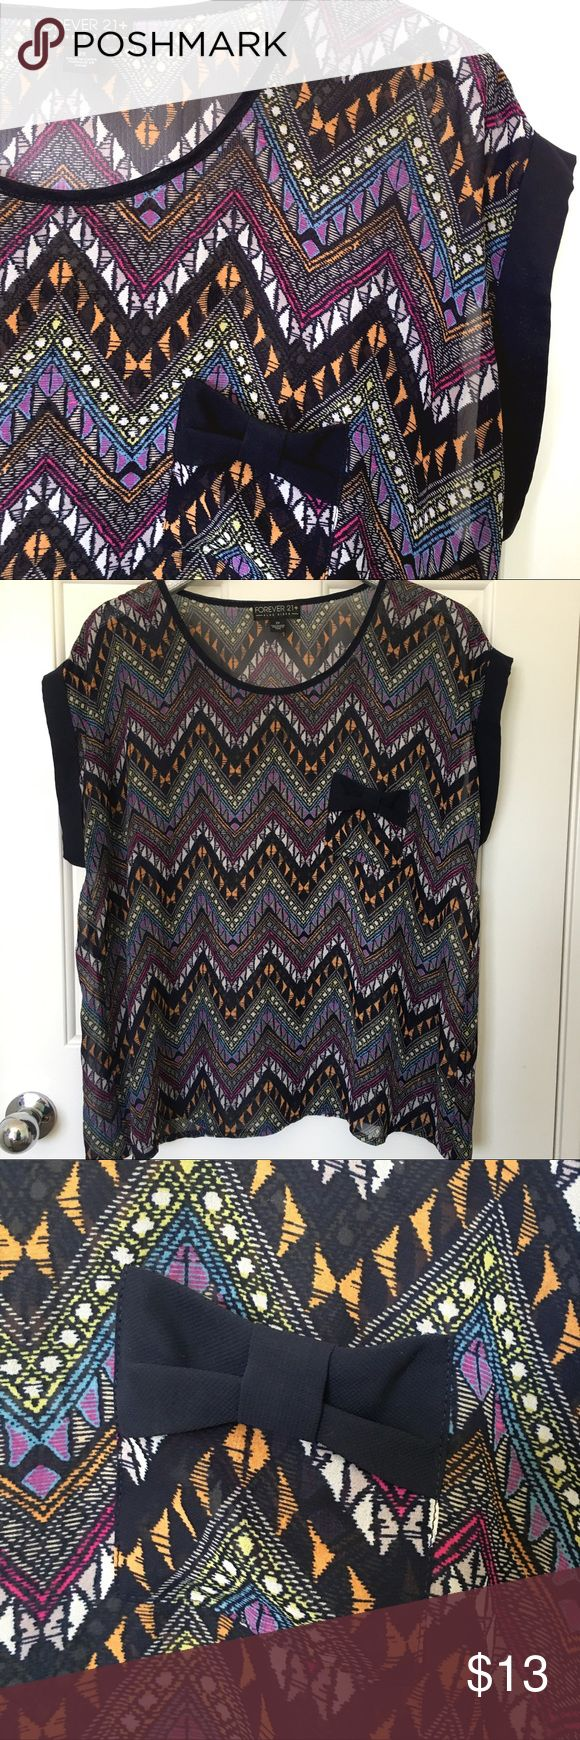 FF21 sheer aztec graphic print shirt multi color This shirt is perfect for summer! Wear a cami or bandeau underneath and you are ready to go! In like new condition! Forever 21 Tops Blouses